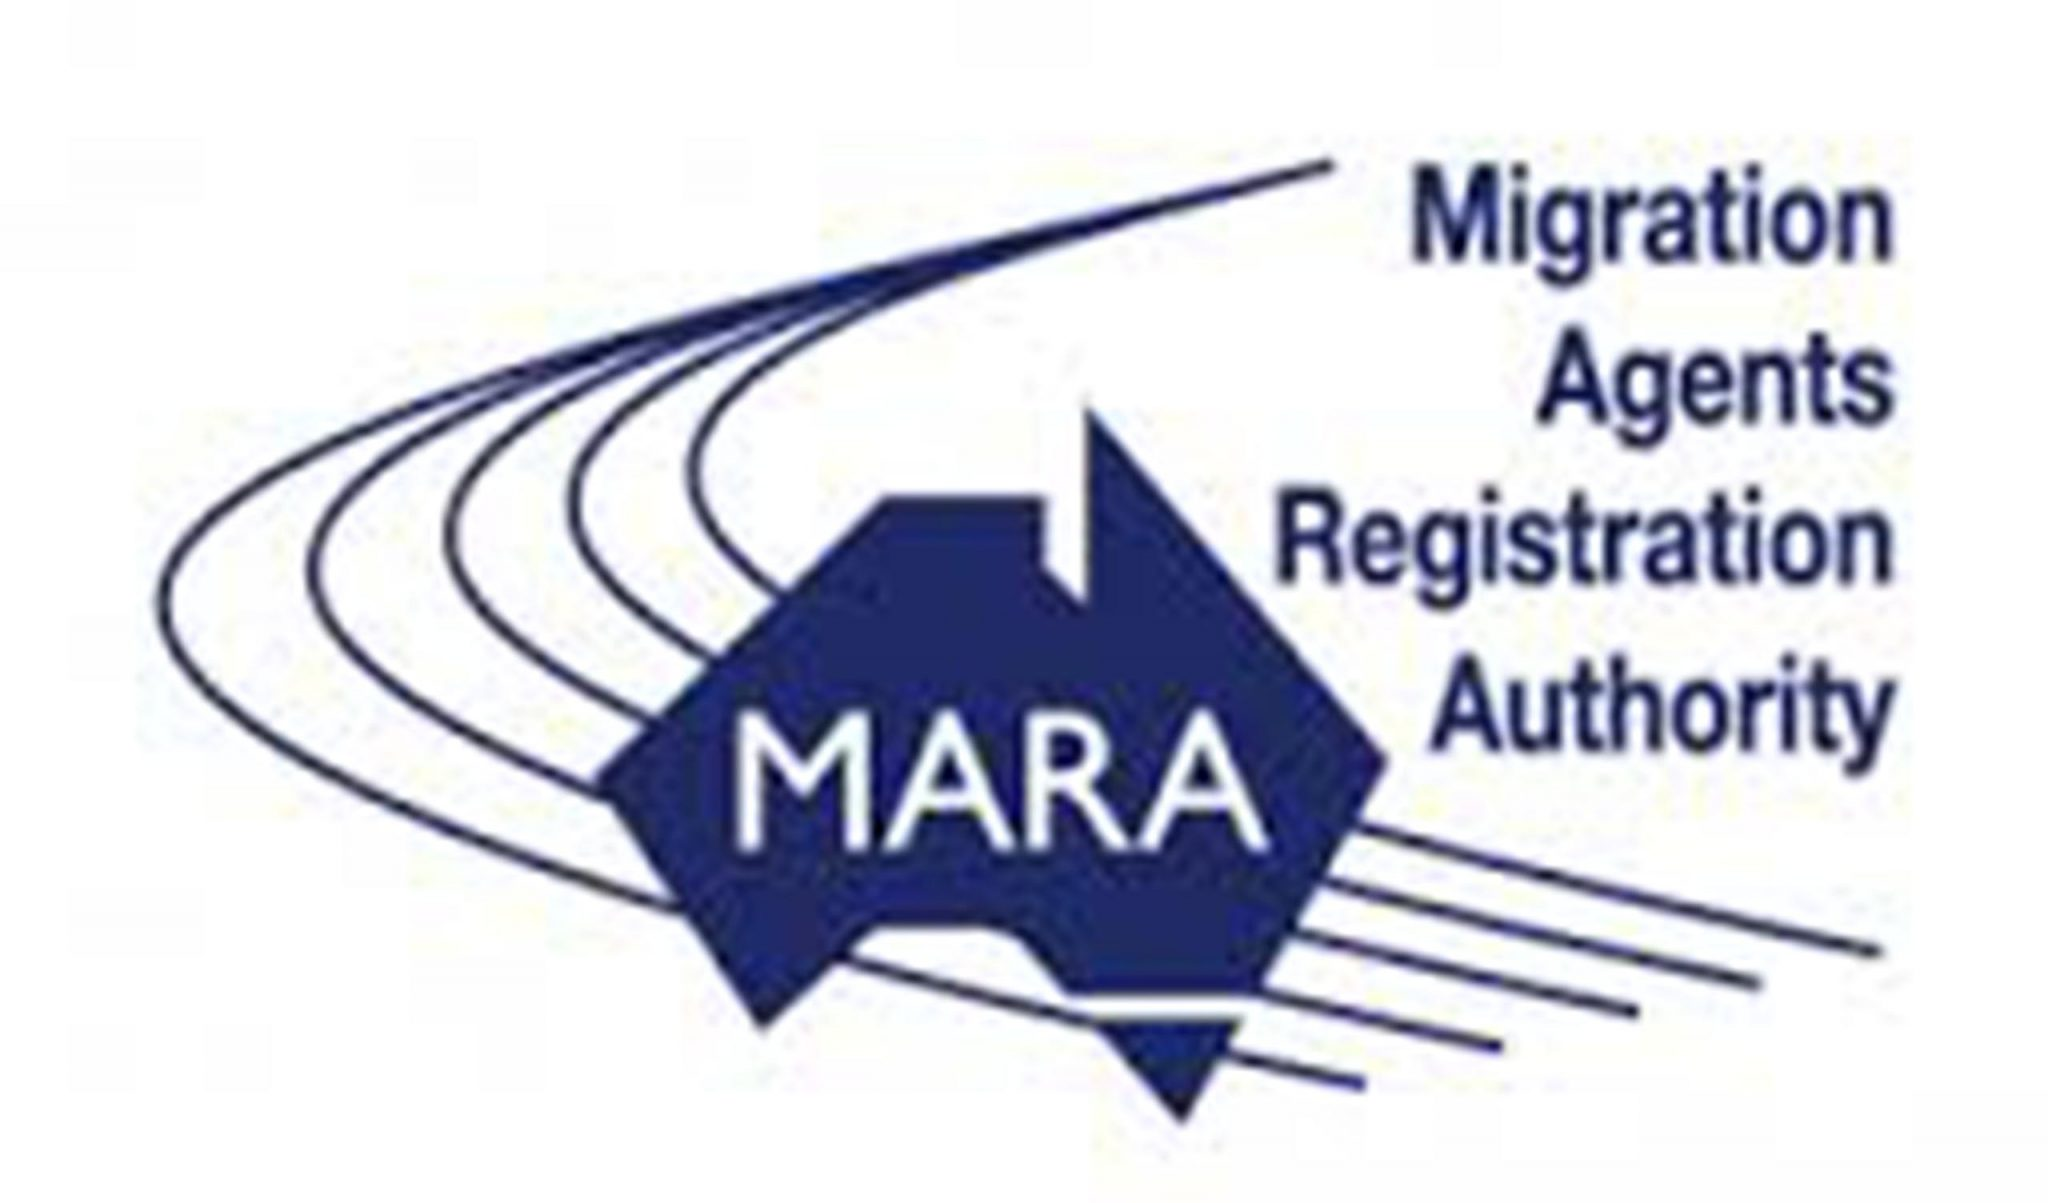 Poor Conduct of the Migration Agents